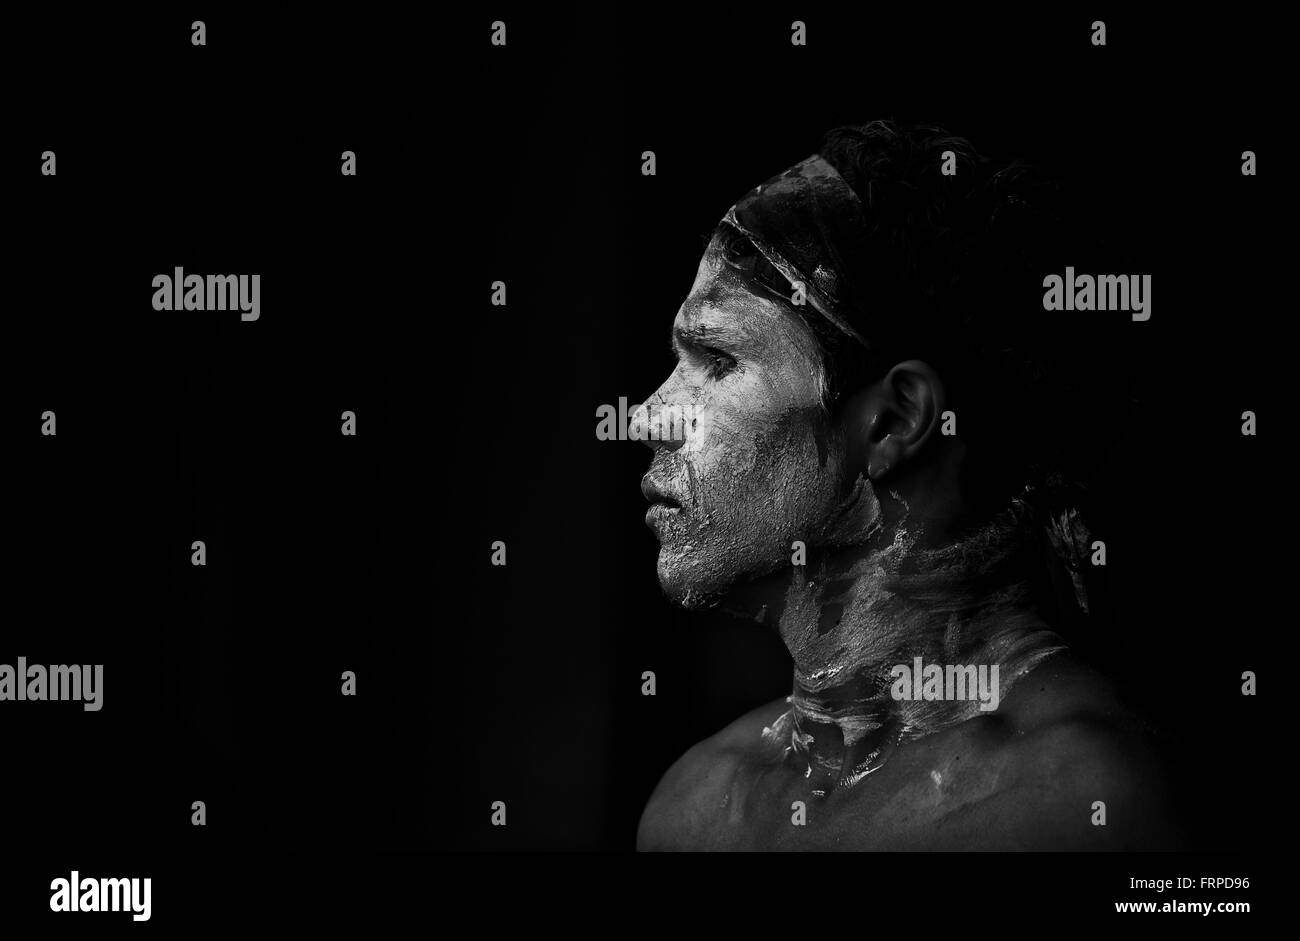 Aboriginal Australian dancer with face paint standing in shadow. Atmospheric black&white profile portrait . - Stock Image